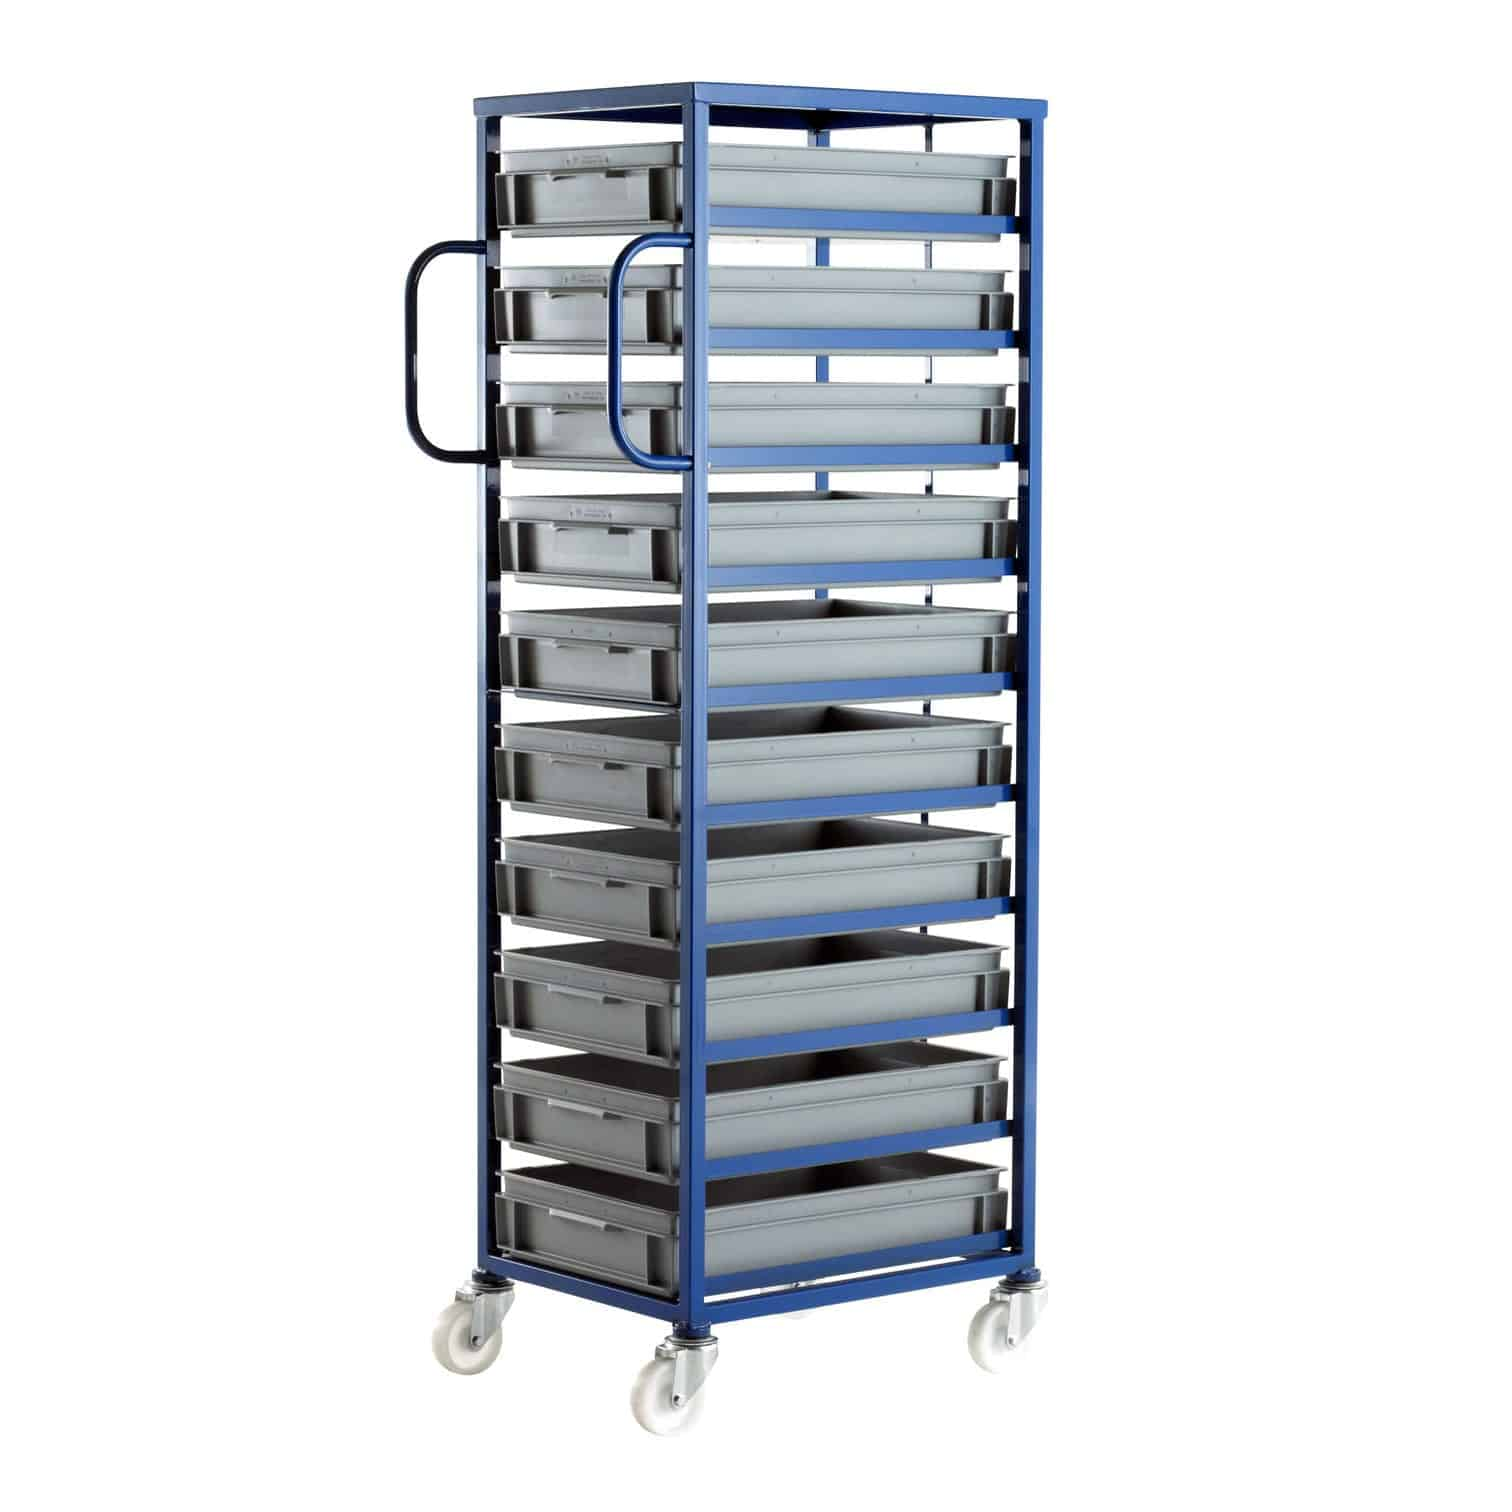 CT10 Mobile Tray Racks